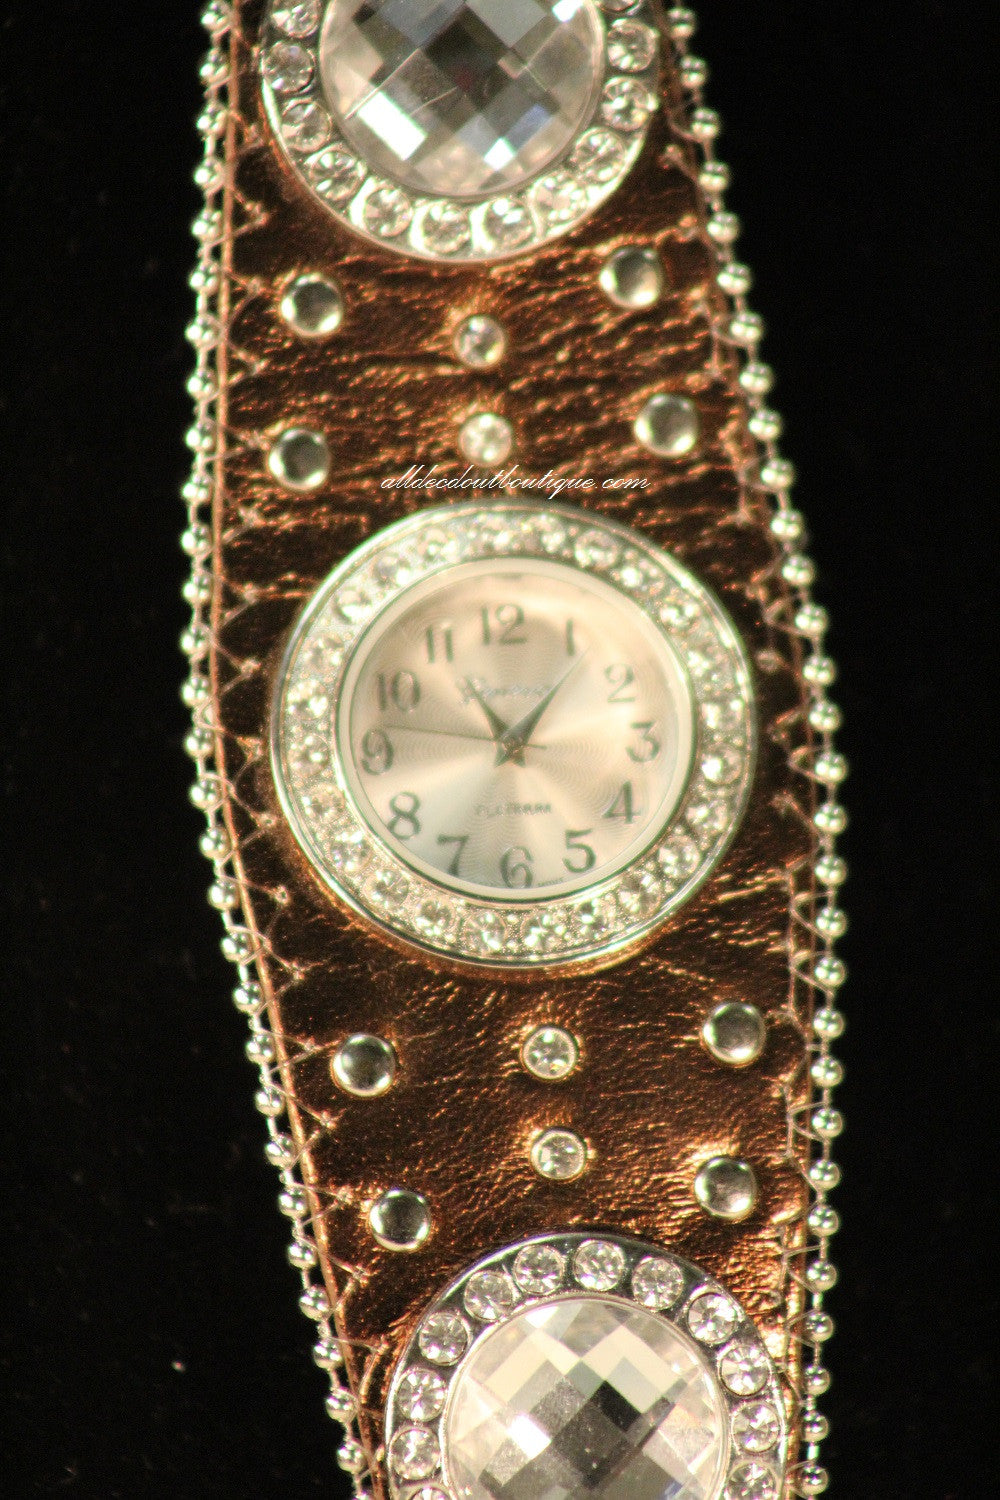 Brown/White Silver Studs & Clear Rhinestones | Leather Band with Buckle Clasp